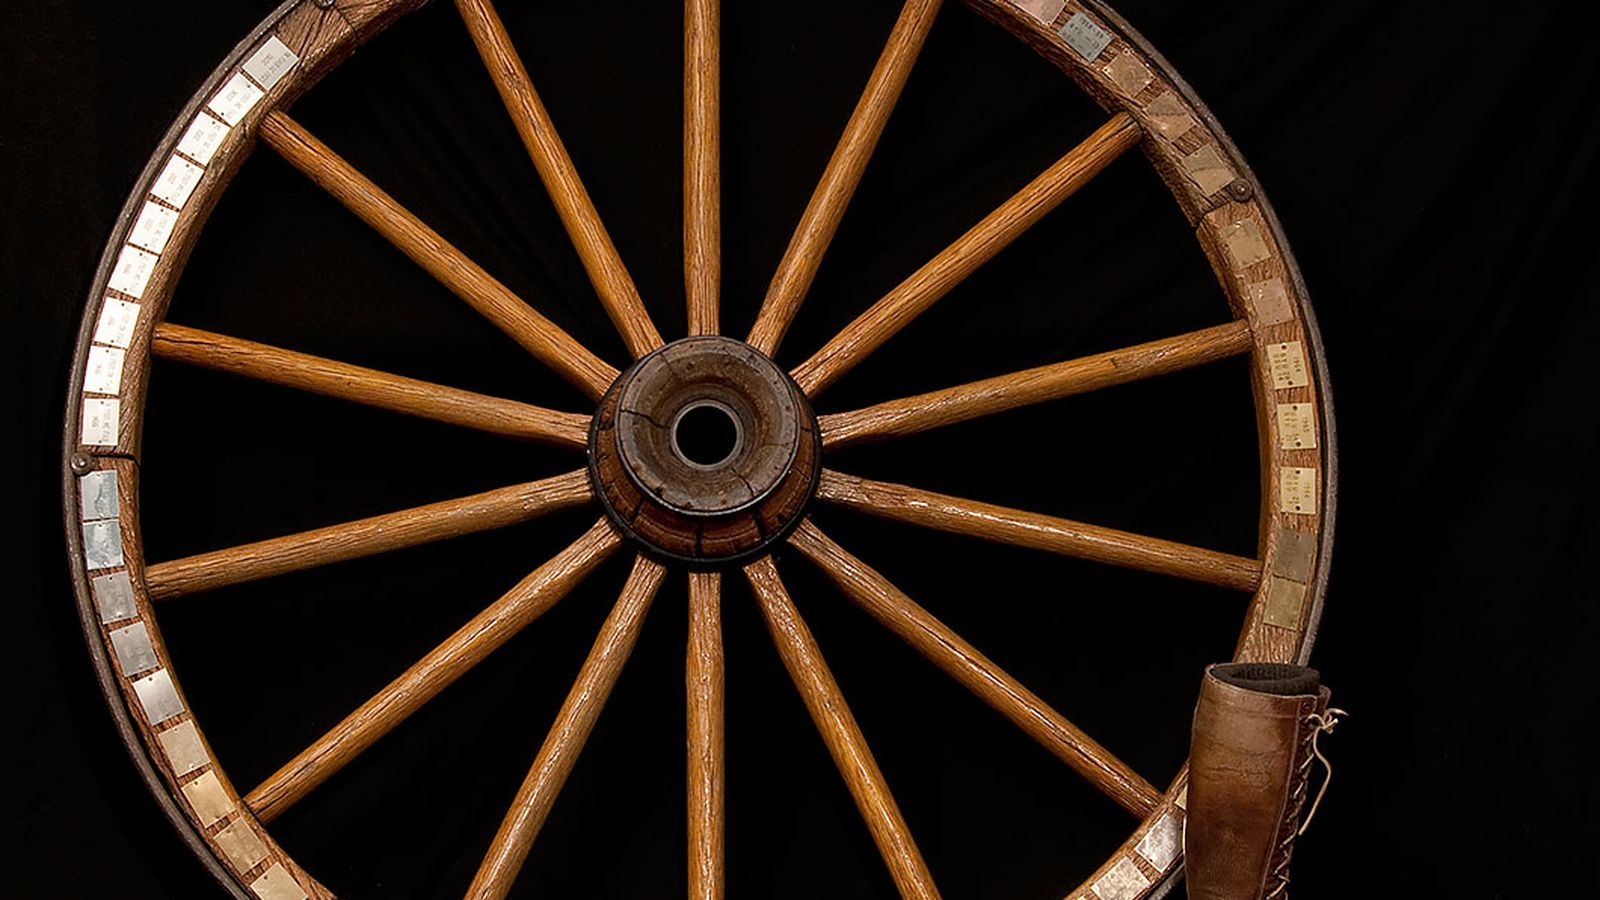 Utah_state_byu_wagon_wheel.0